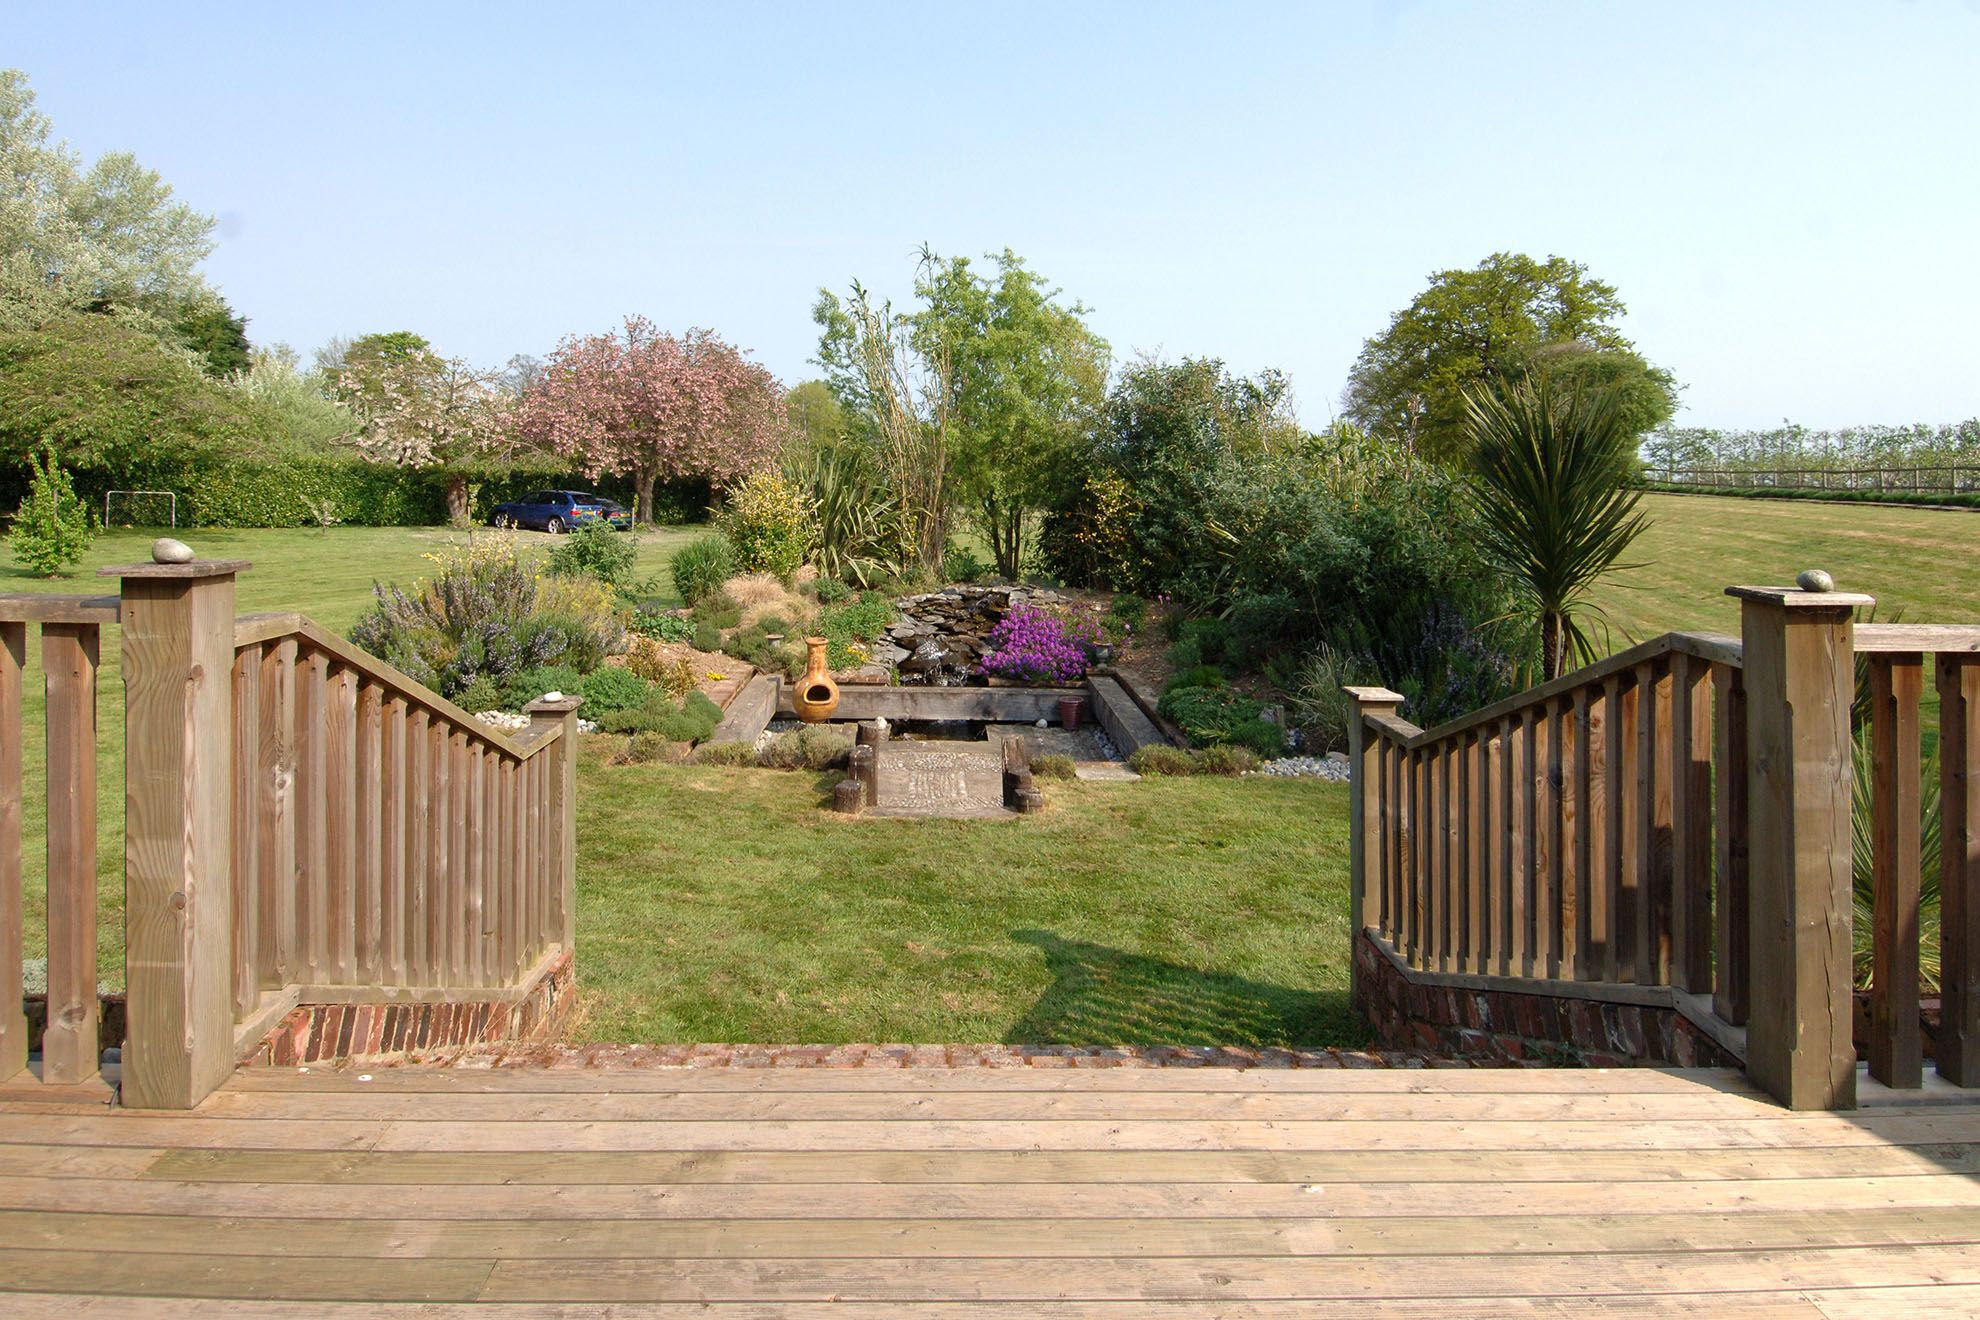 View from The Barn of the beautifully landscaped gardens and water feature